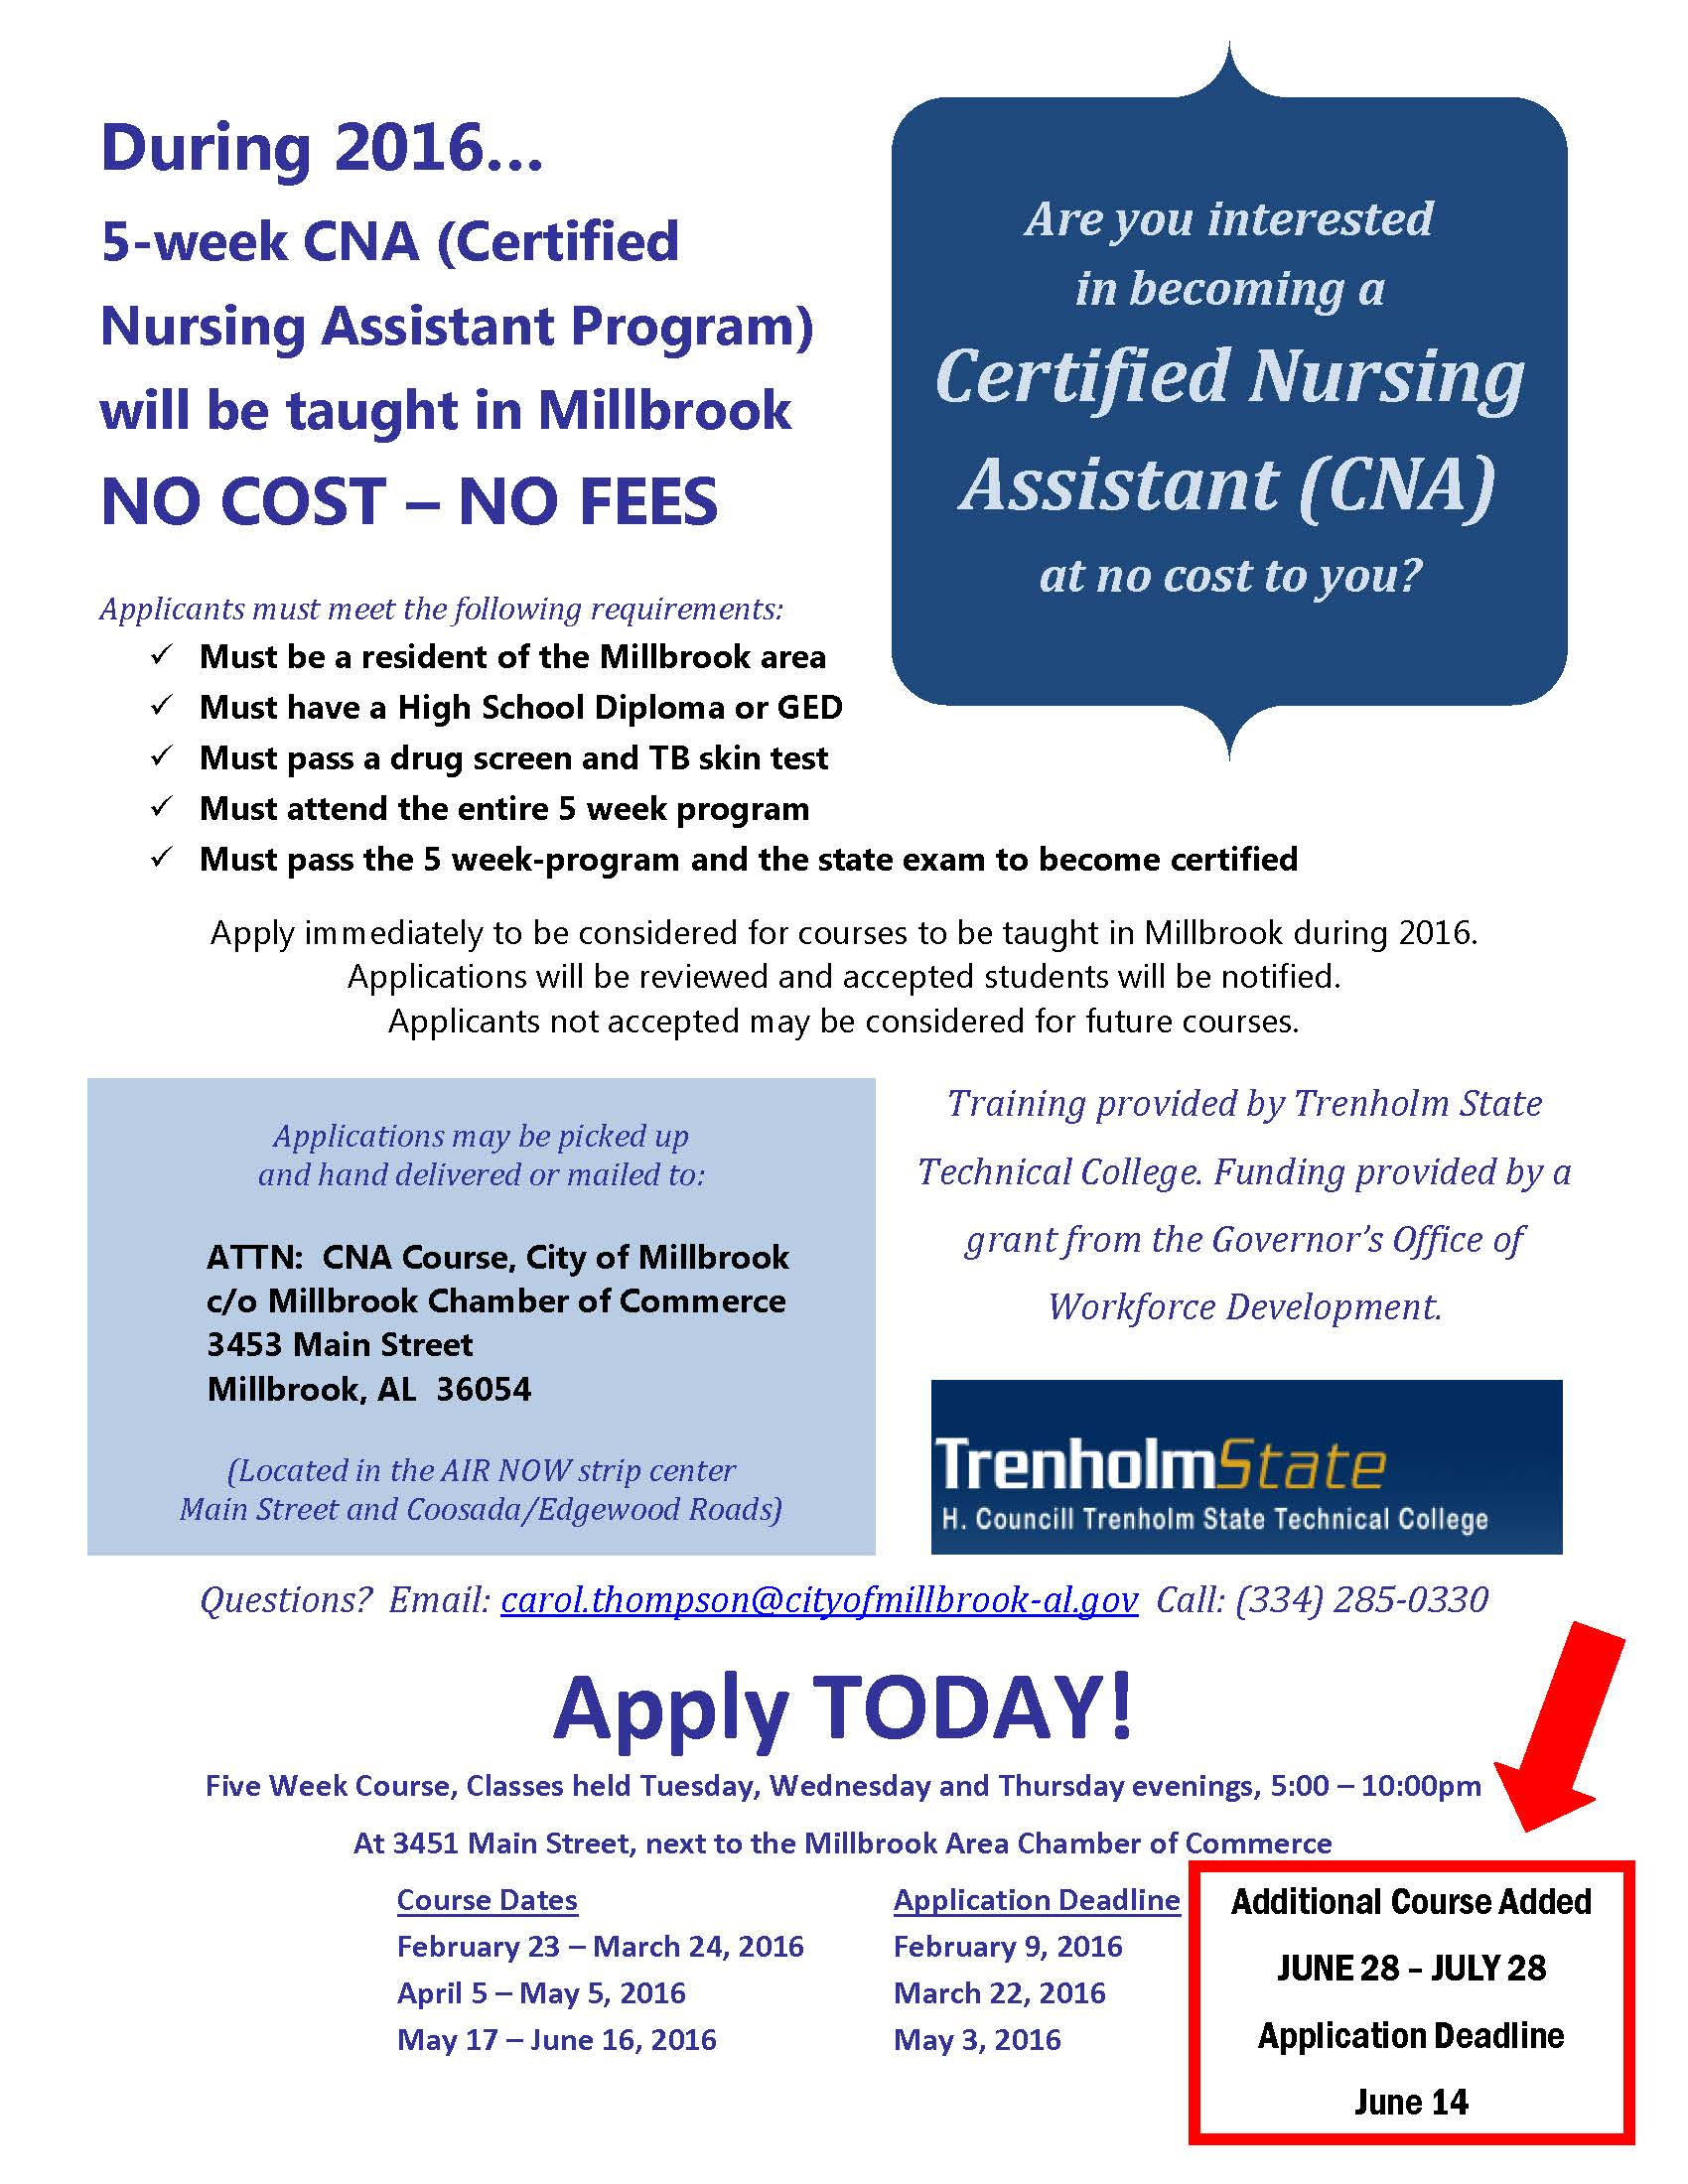 Trenholm adds fifth cna course free to millbrook residents sign trenholm adds fifth cna course free to millbrook residents sign up by june 14 elmoreautauganews xflitez Image collections